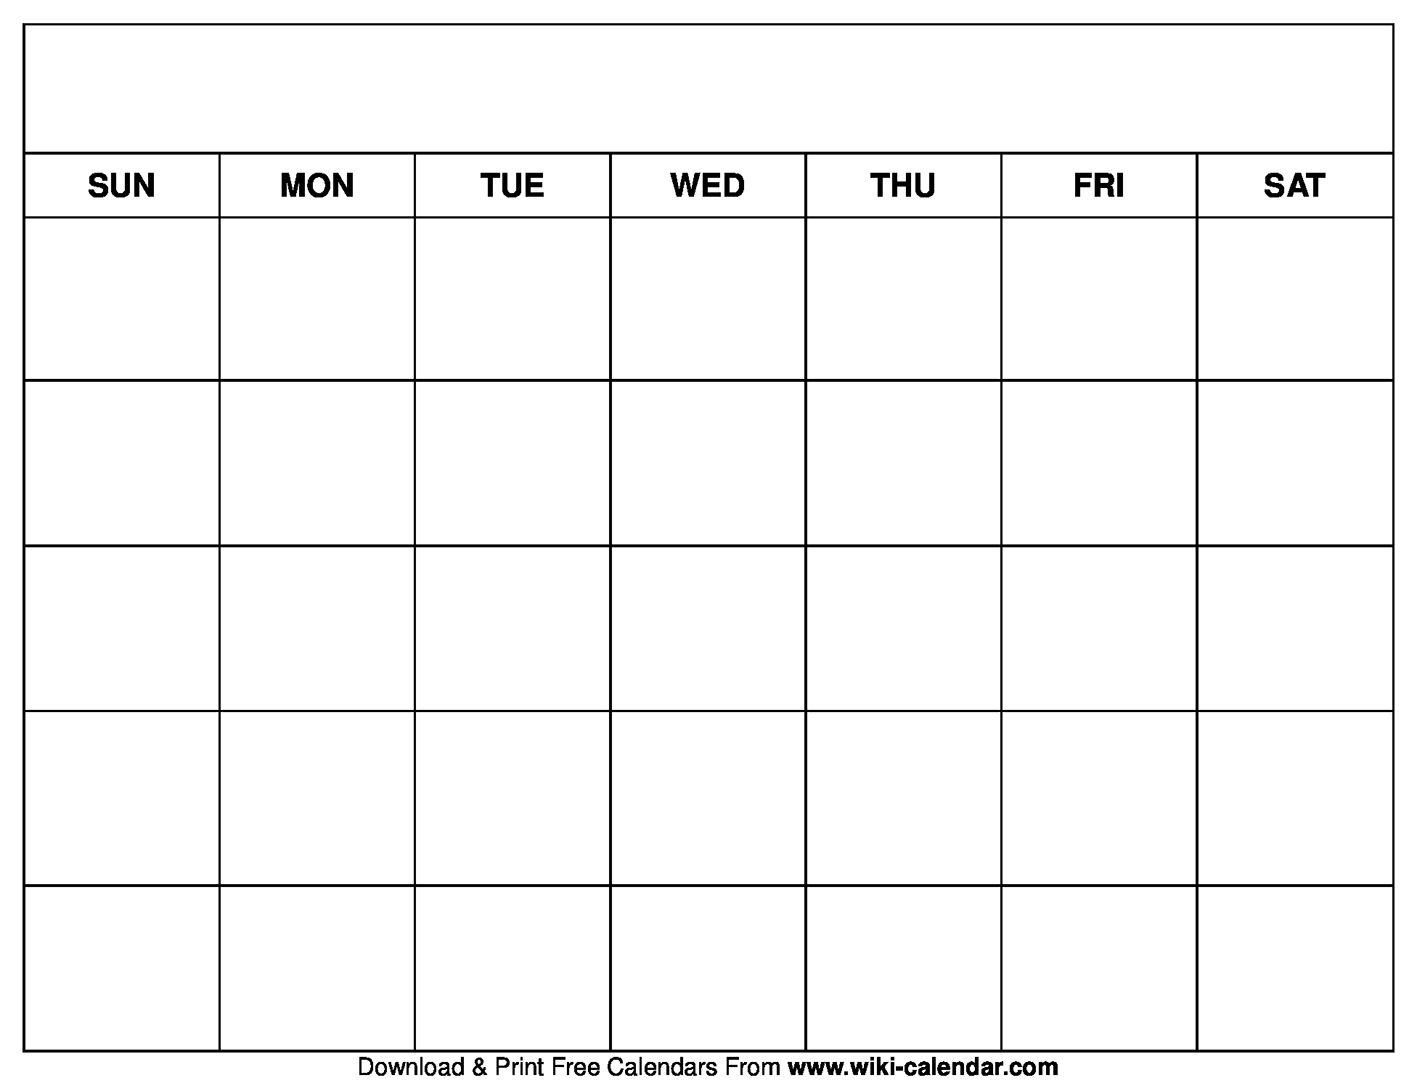 Catch Blank Printable Calanders